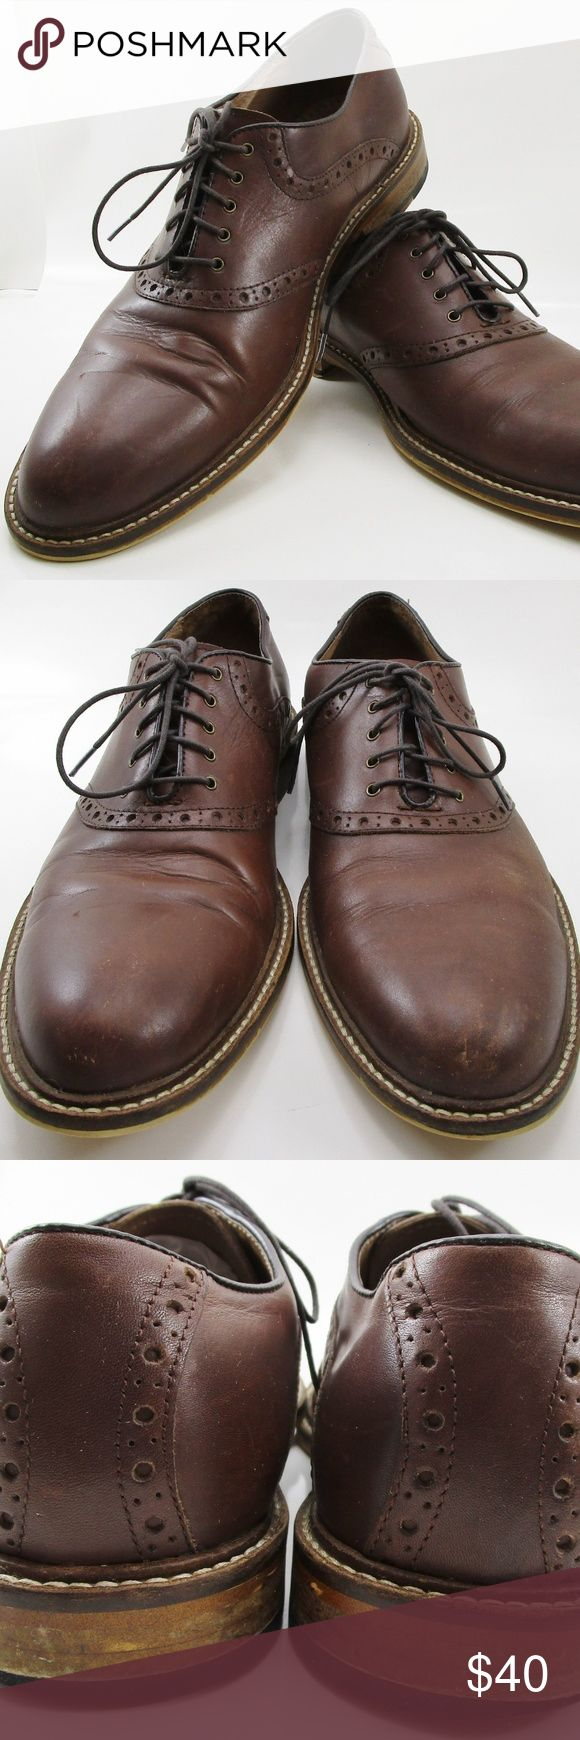 Aston Grey Tokyo Brown Leather Oxford 10.5 Brogue Mens Aston Grey Tokyo Brown Leather Oxford Brogue Dress Shoes 10.5 M US.  Used in good condition - very well made shoes.  Shows normal signs of wear including minor scuffs - easily polished.  Please refer to photos for details. Aston Grey Shoes Loafers & Slip-Ons